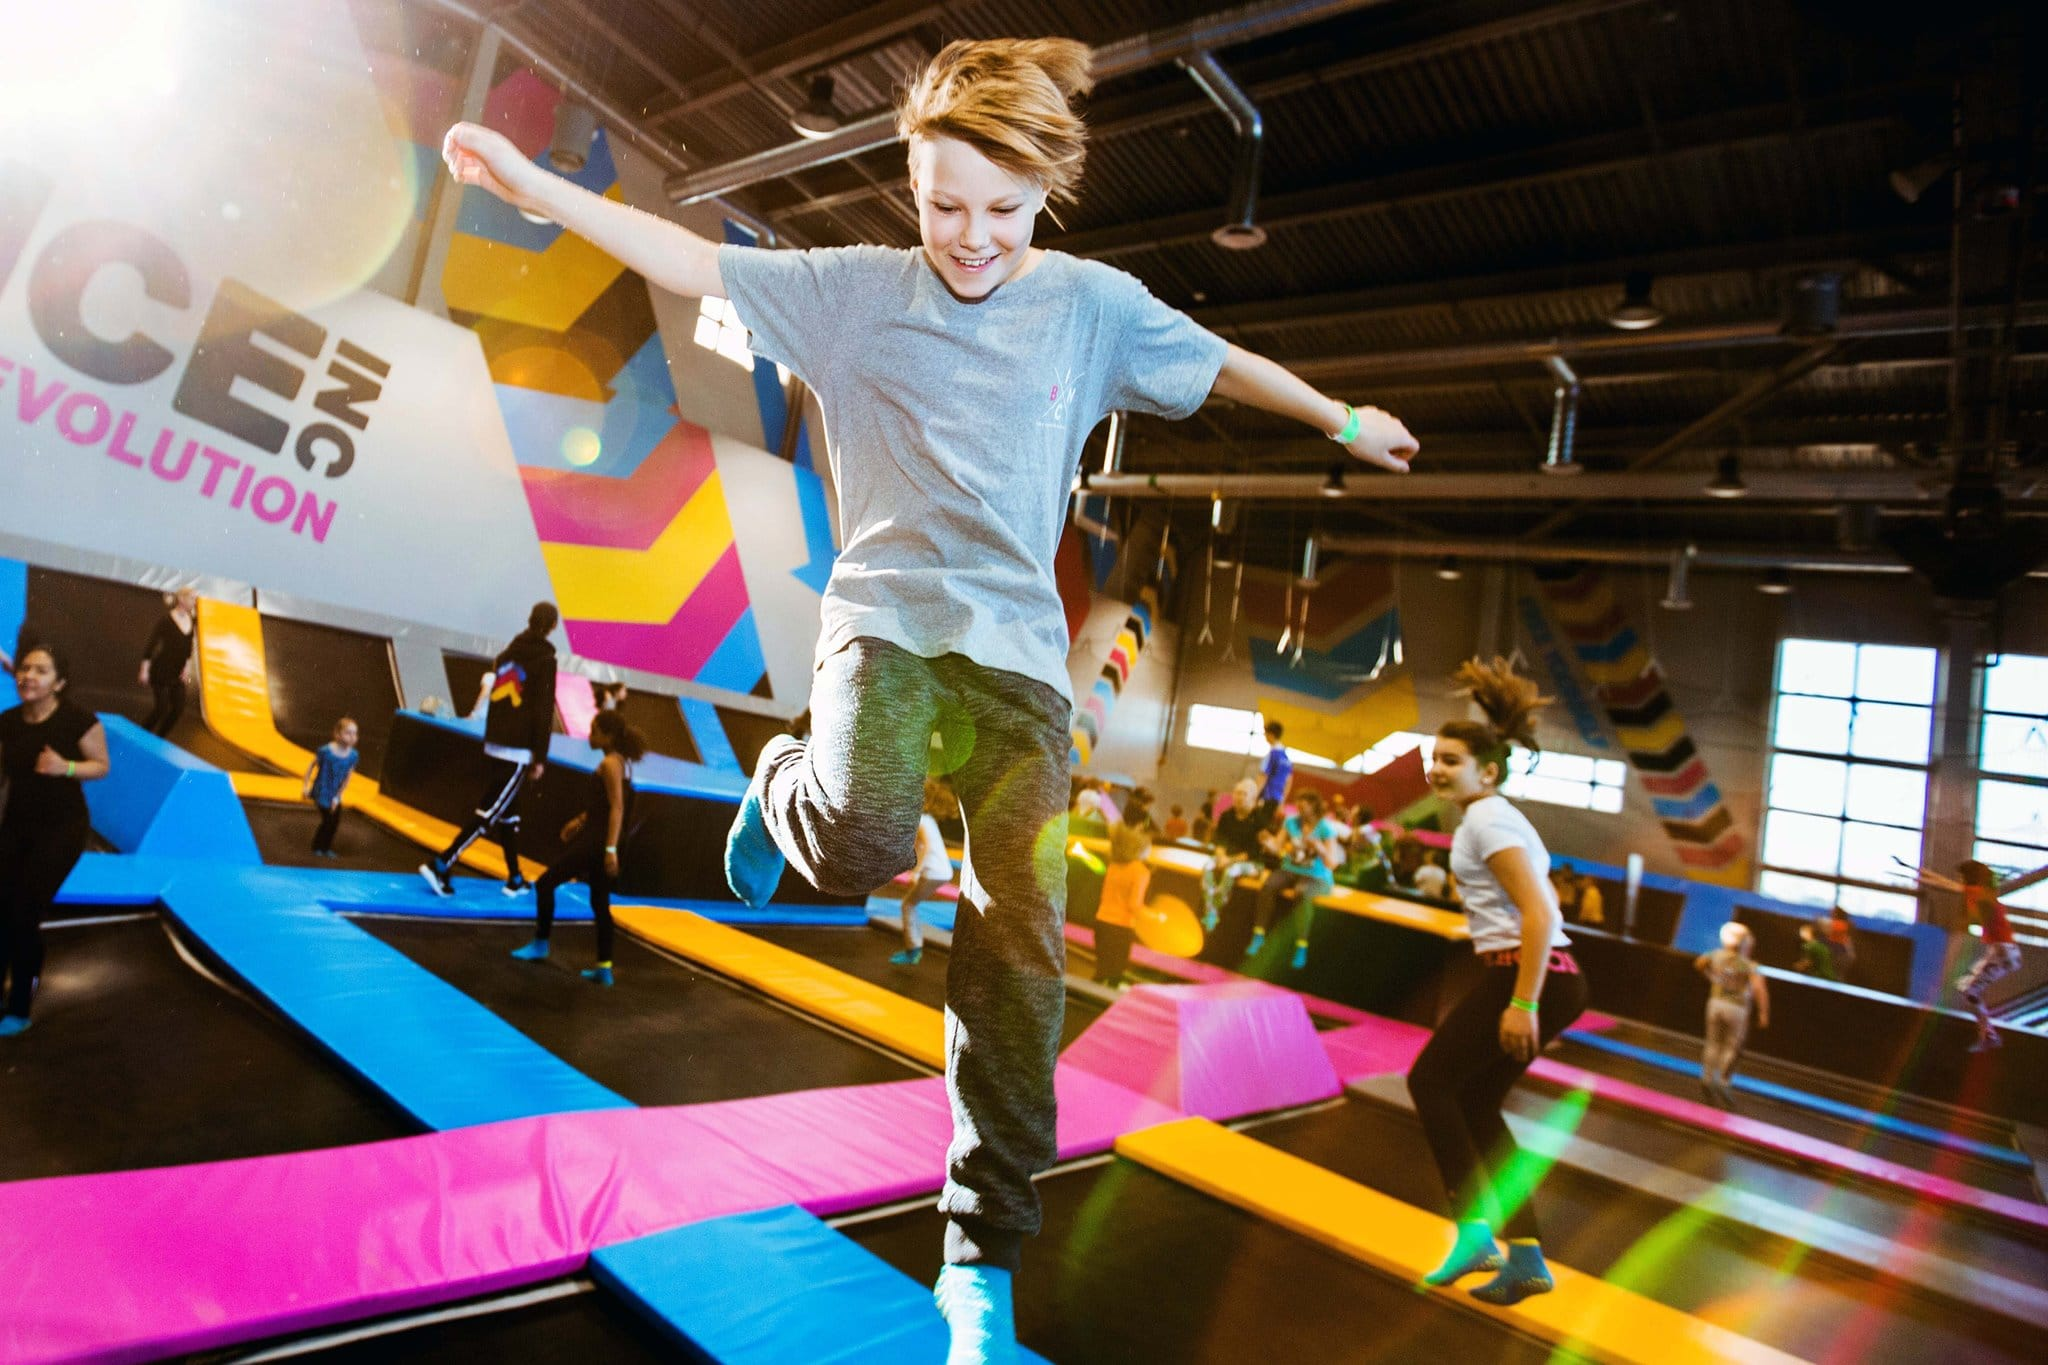 kids bouncing on trampolines